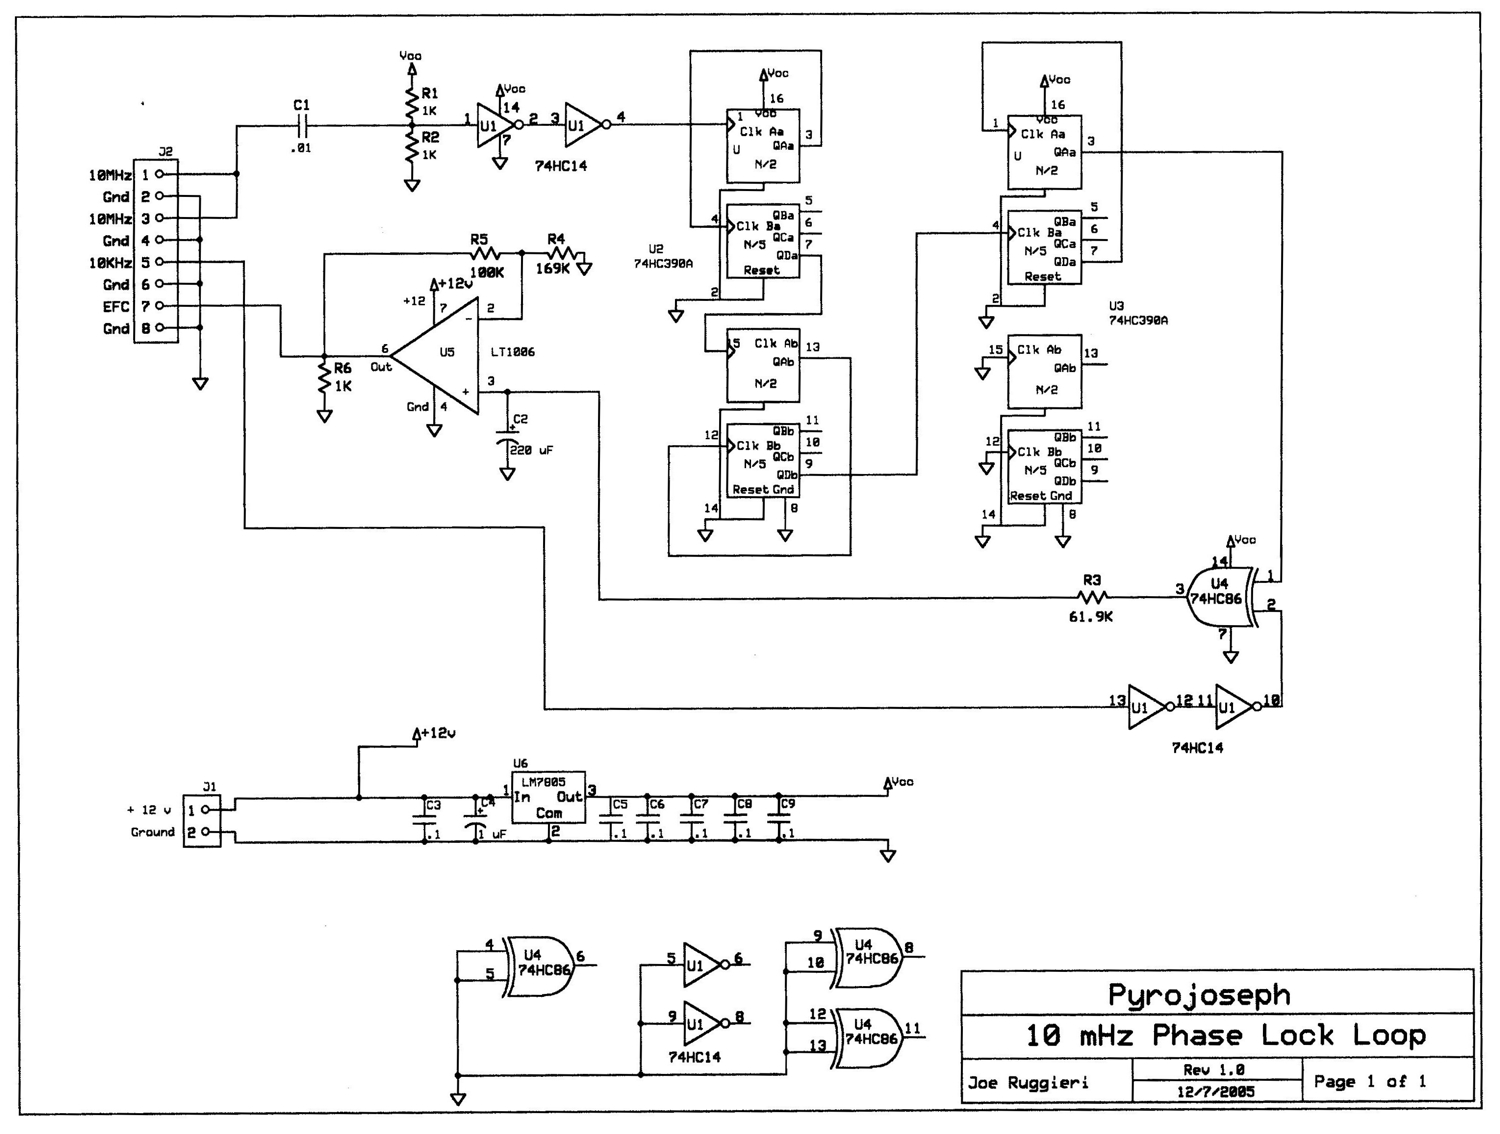 Gps Circuit Page 2 Rf Circuits Relay Delay Free Electronic 8085 Projects Disciplined 10 Mhz Frequency Standard Based Universal Time Clock